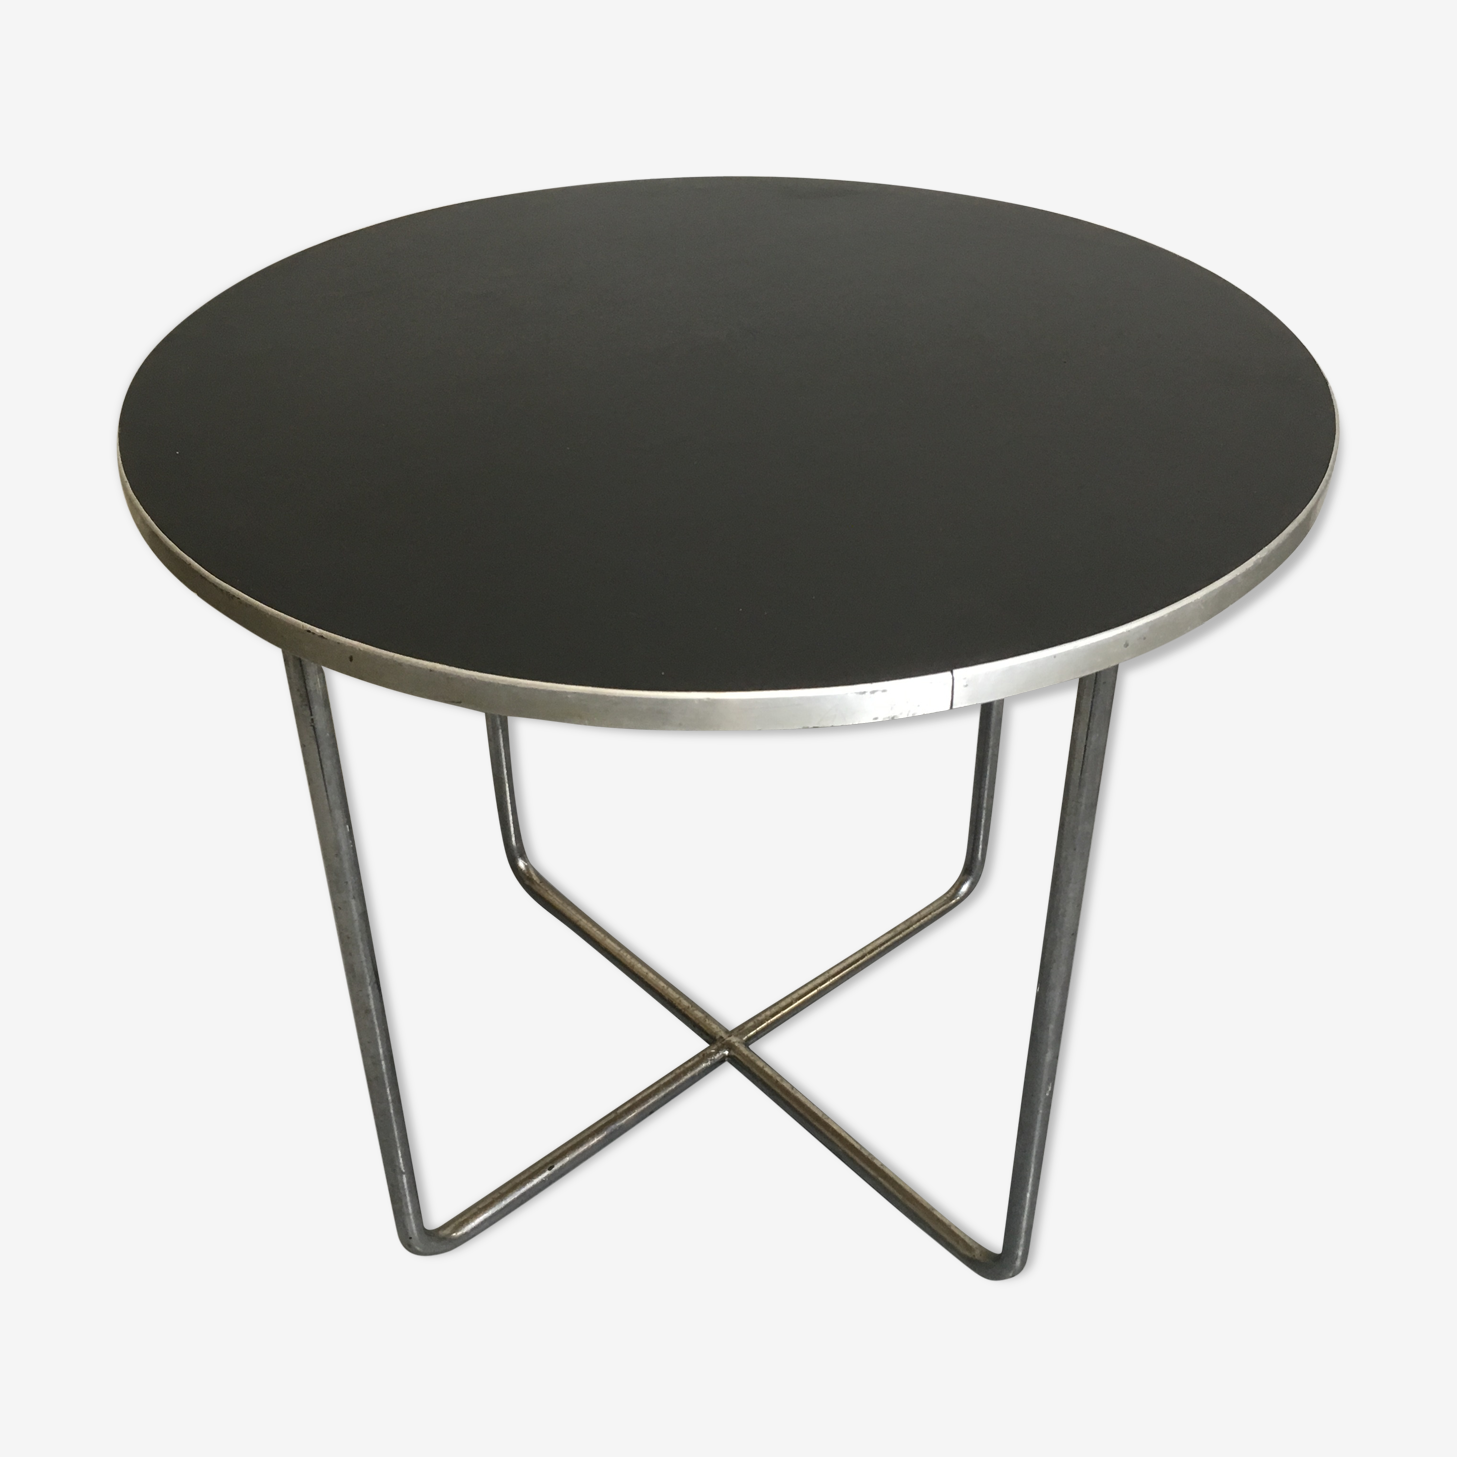 Gispen 501 dining table